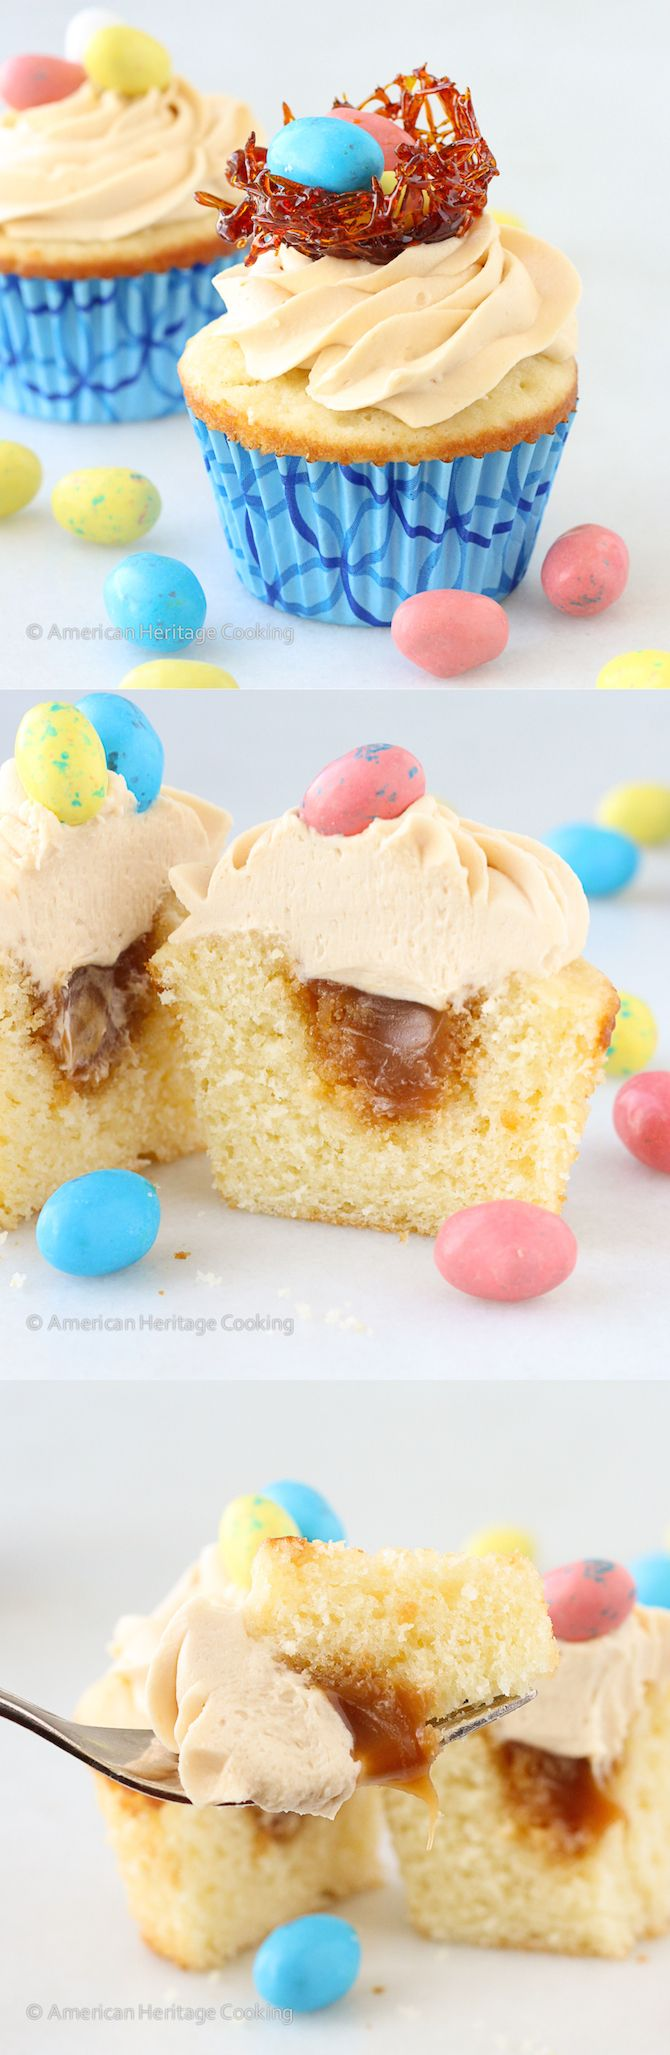 best 25+ salted caramel cupcakes ideas on pinterest | caramel